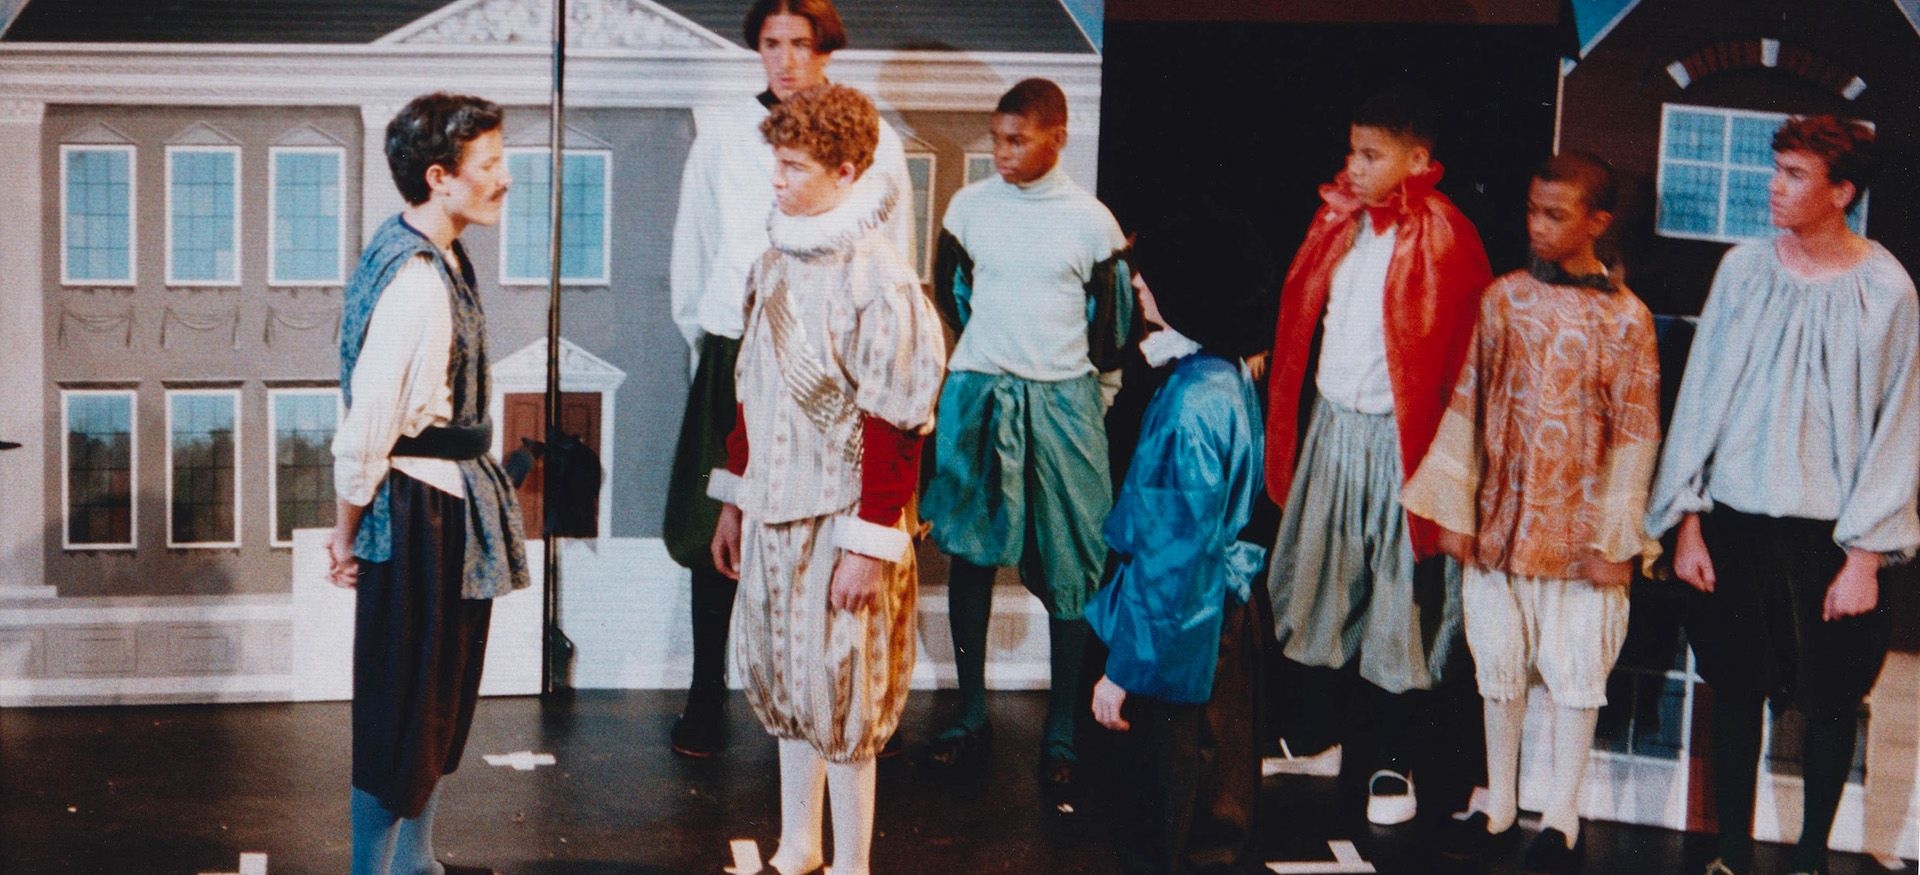 1996, Twelfth Night